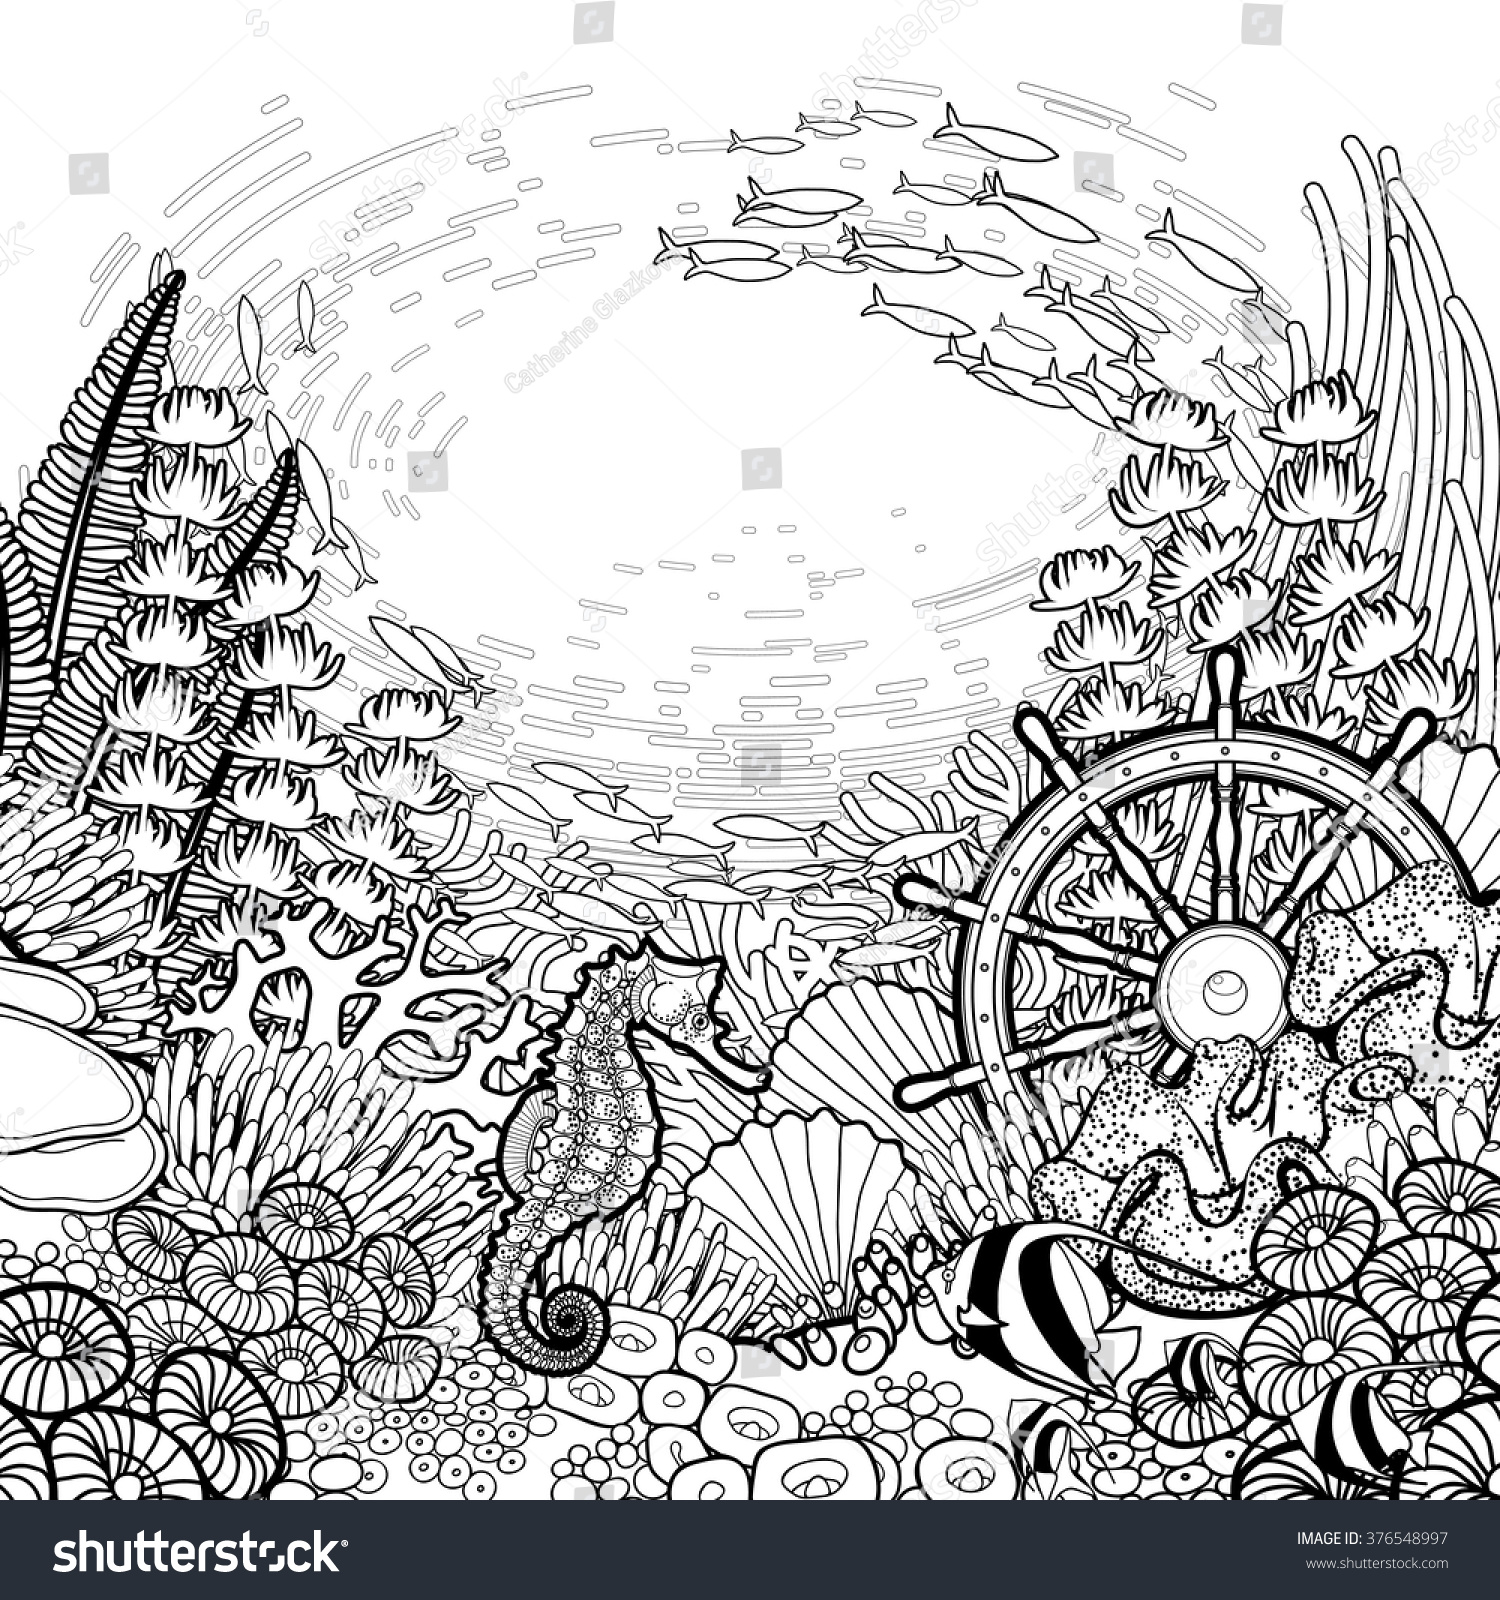 graphic coral reef with sea horse ocean fish and sunken